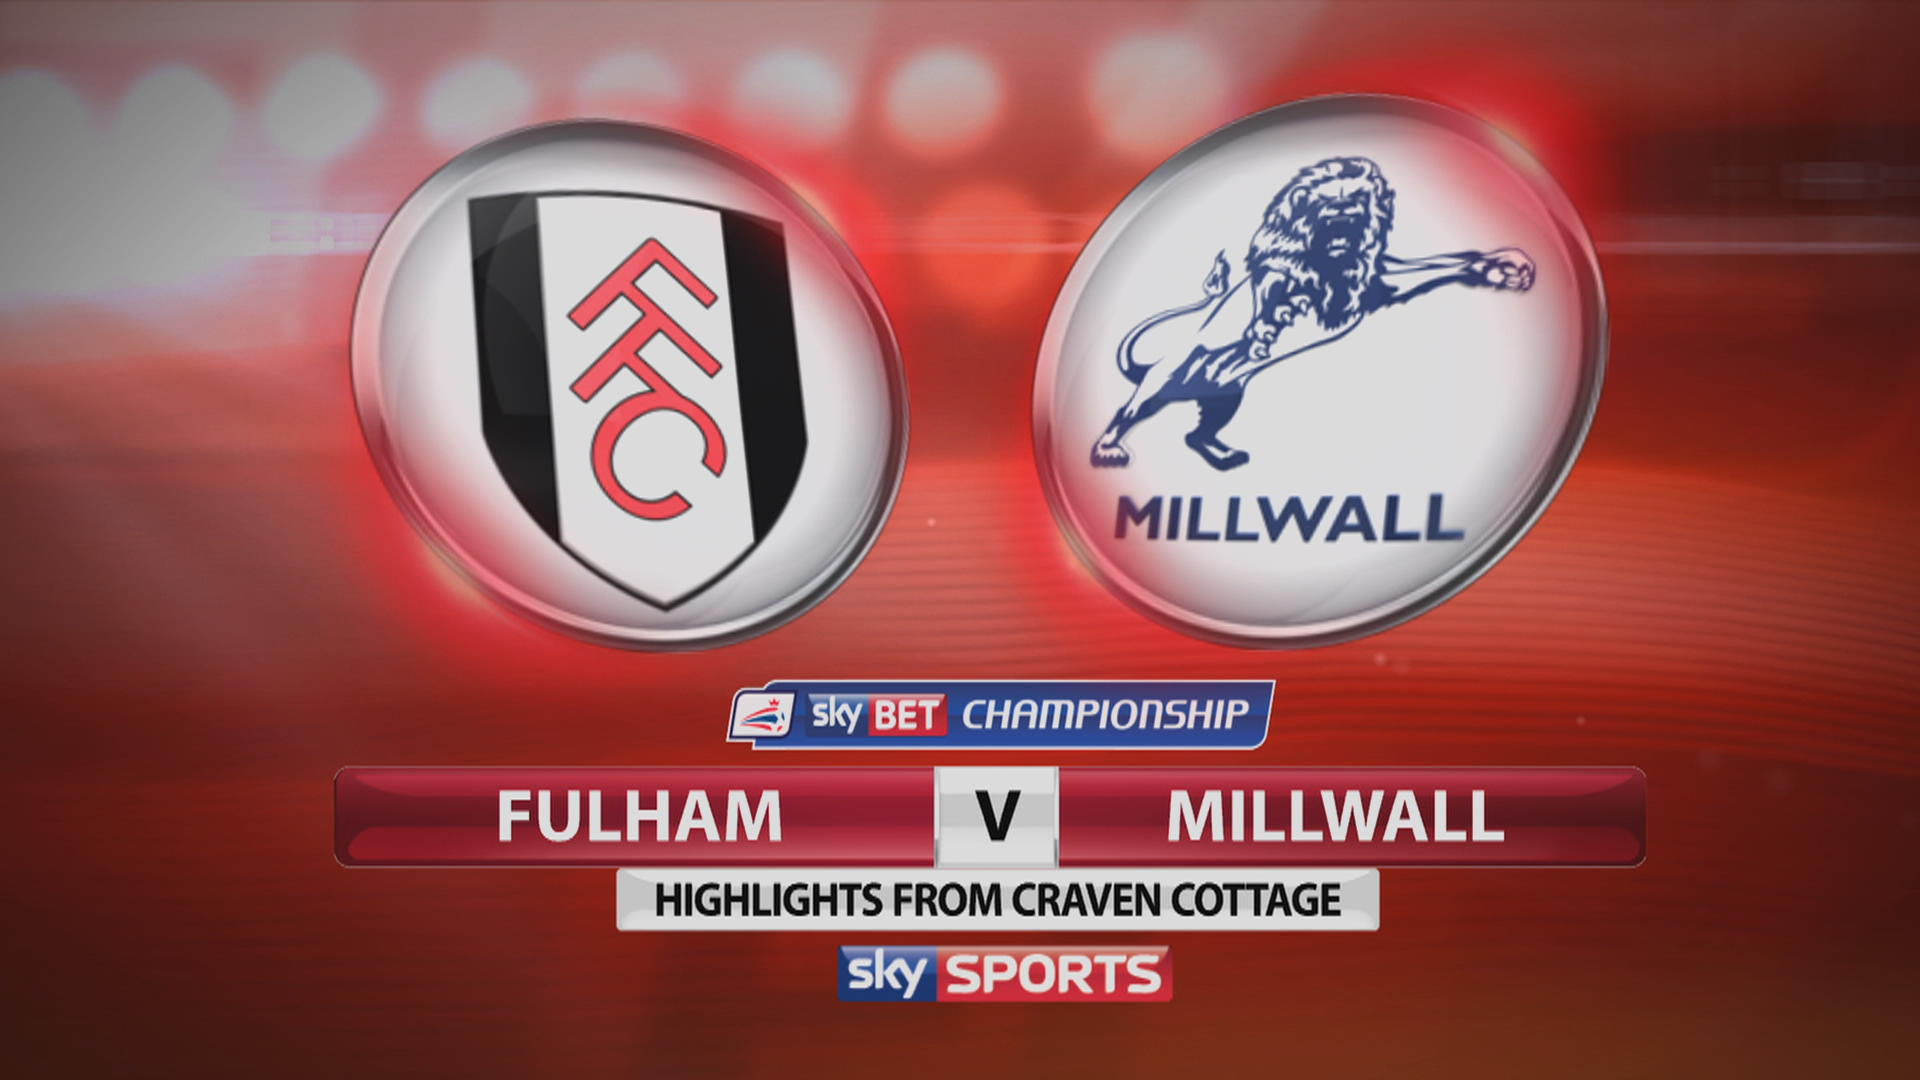 Millwall vs Fulham